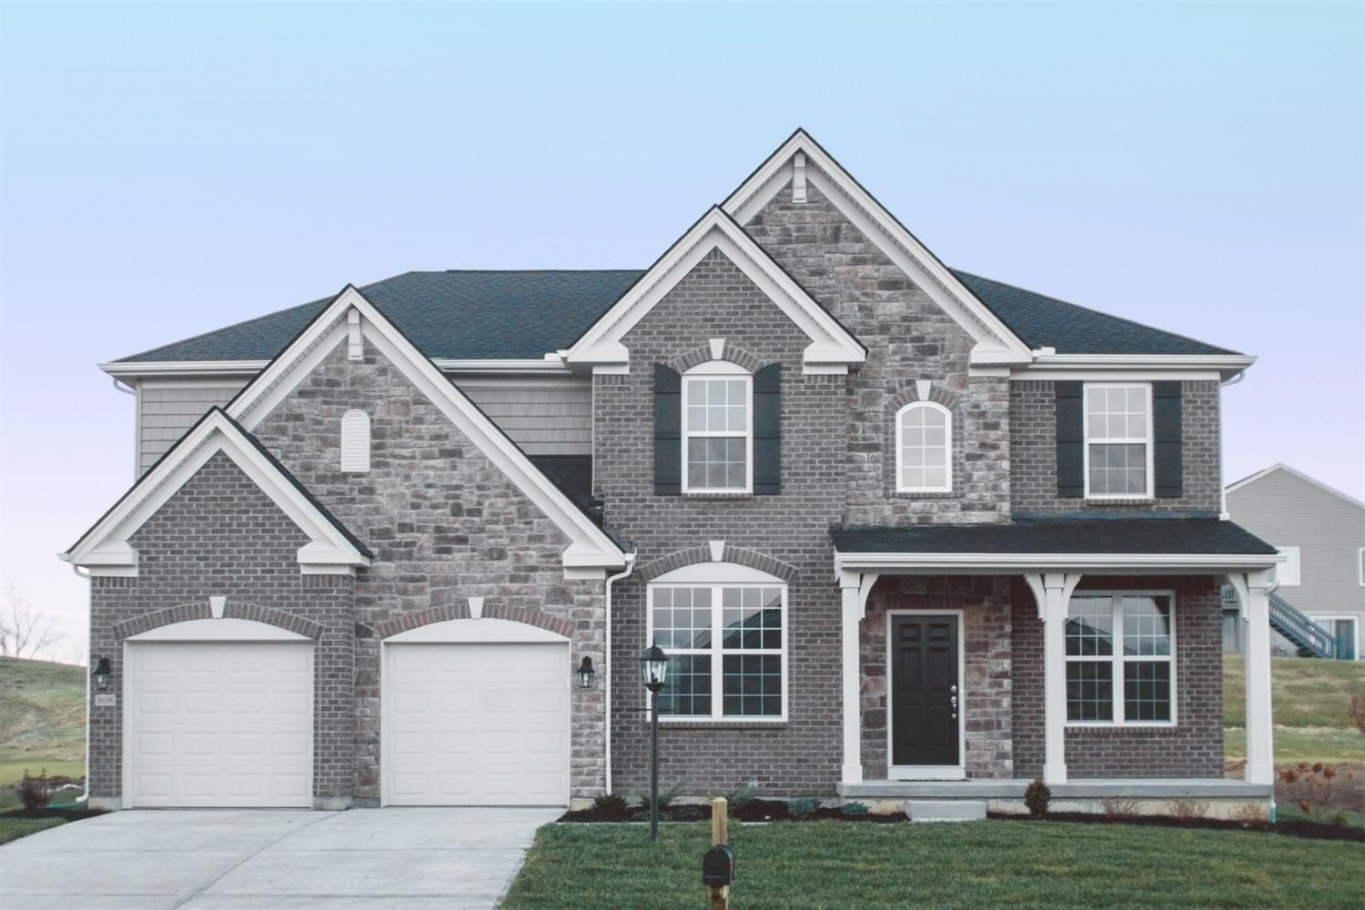 808 Lakerun Ln, Erlanger, Ky 41018 Listing Details: Sibcy throughout Brick And Stone Homes